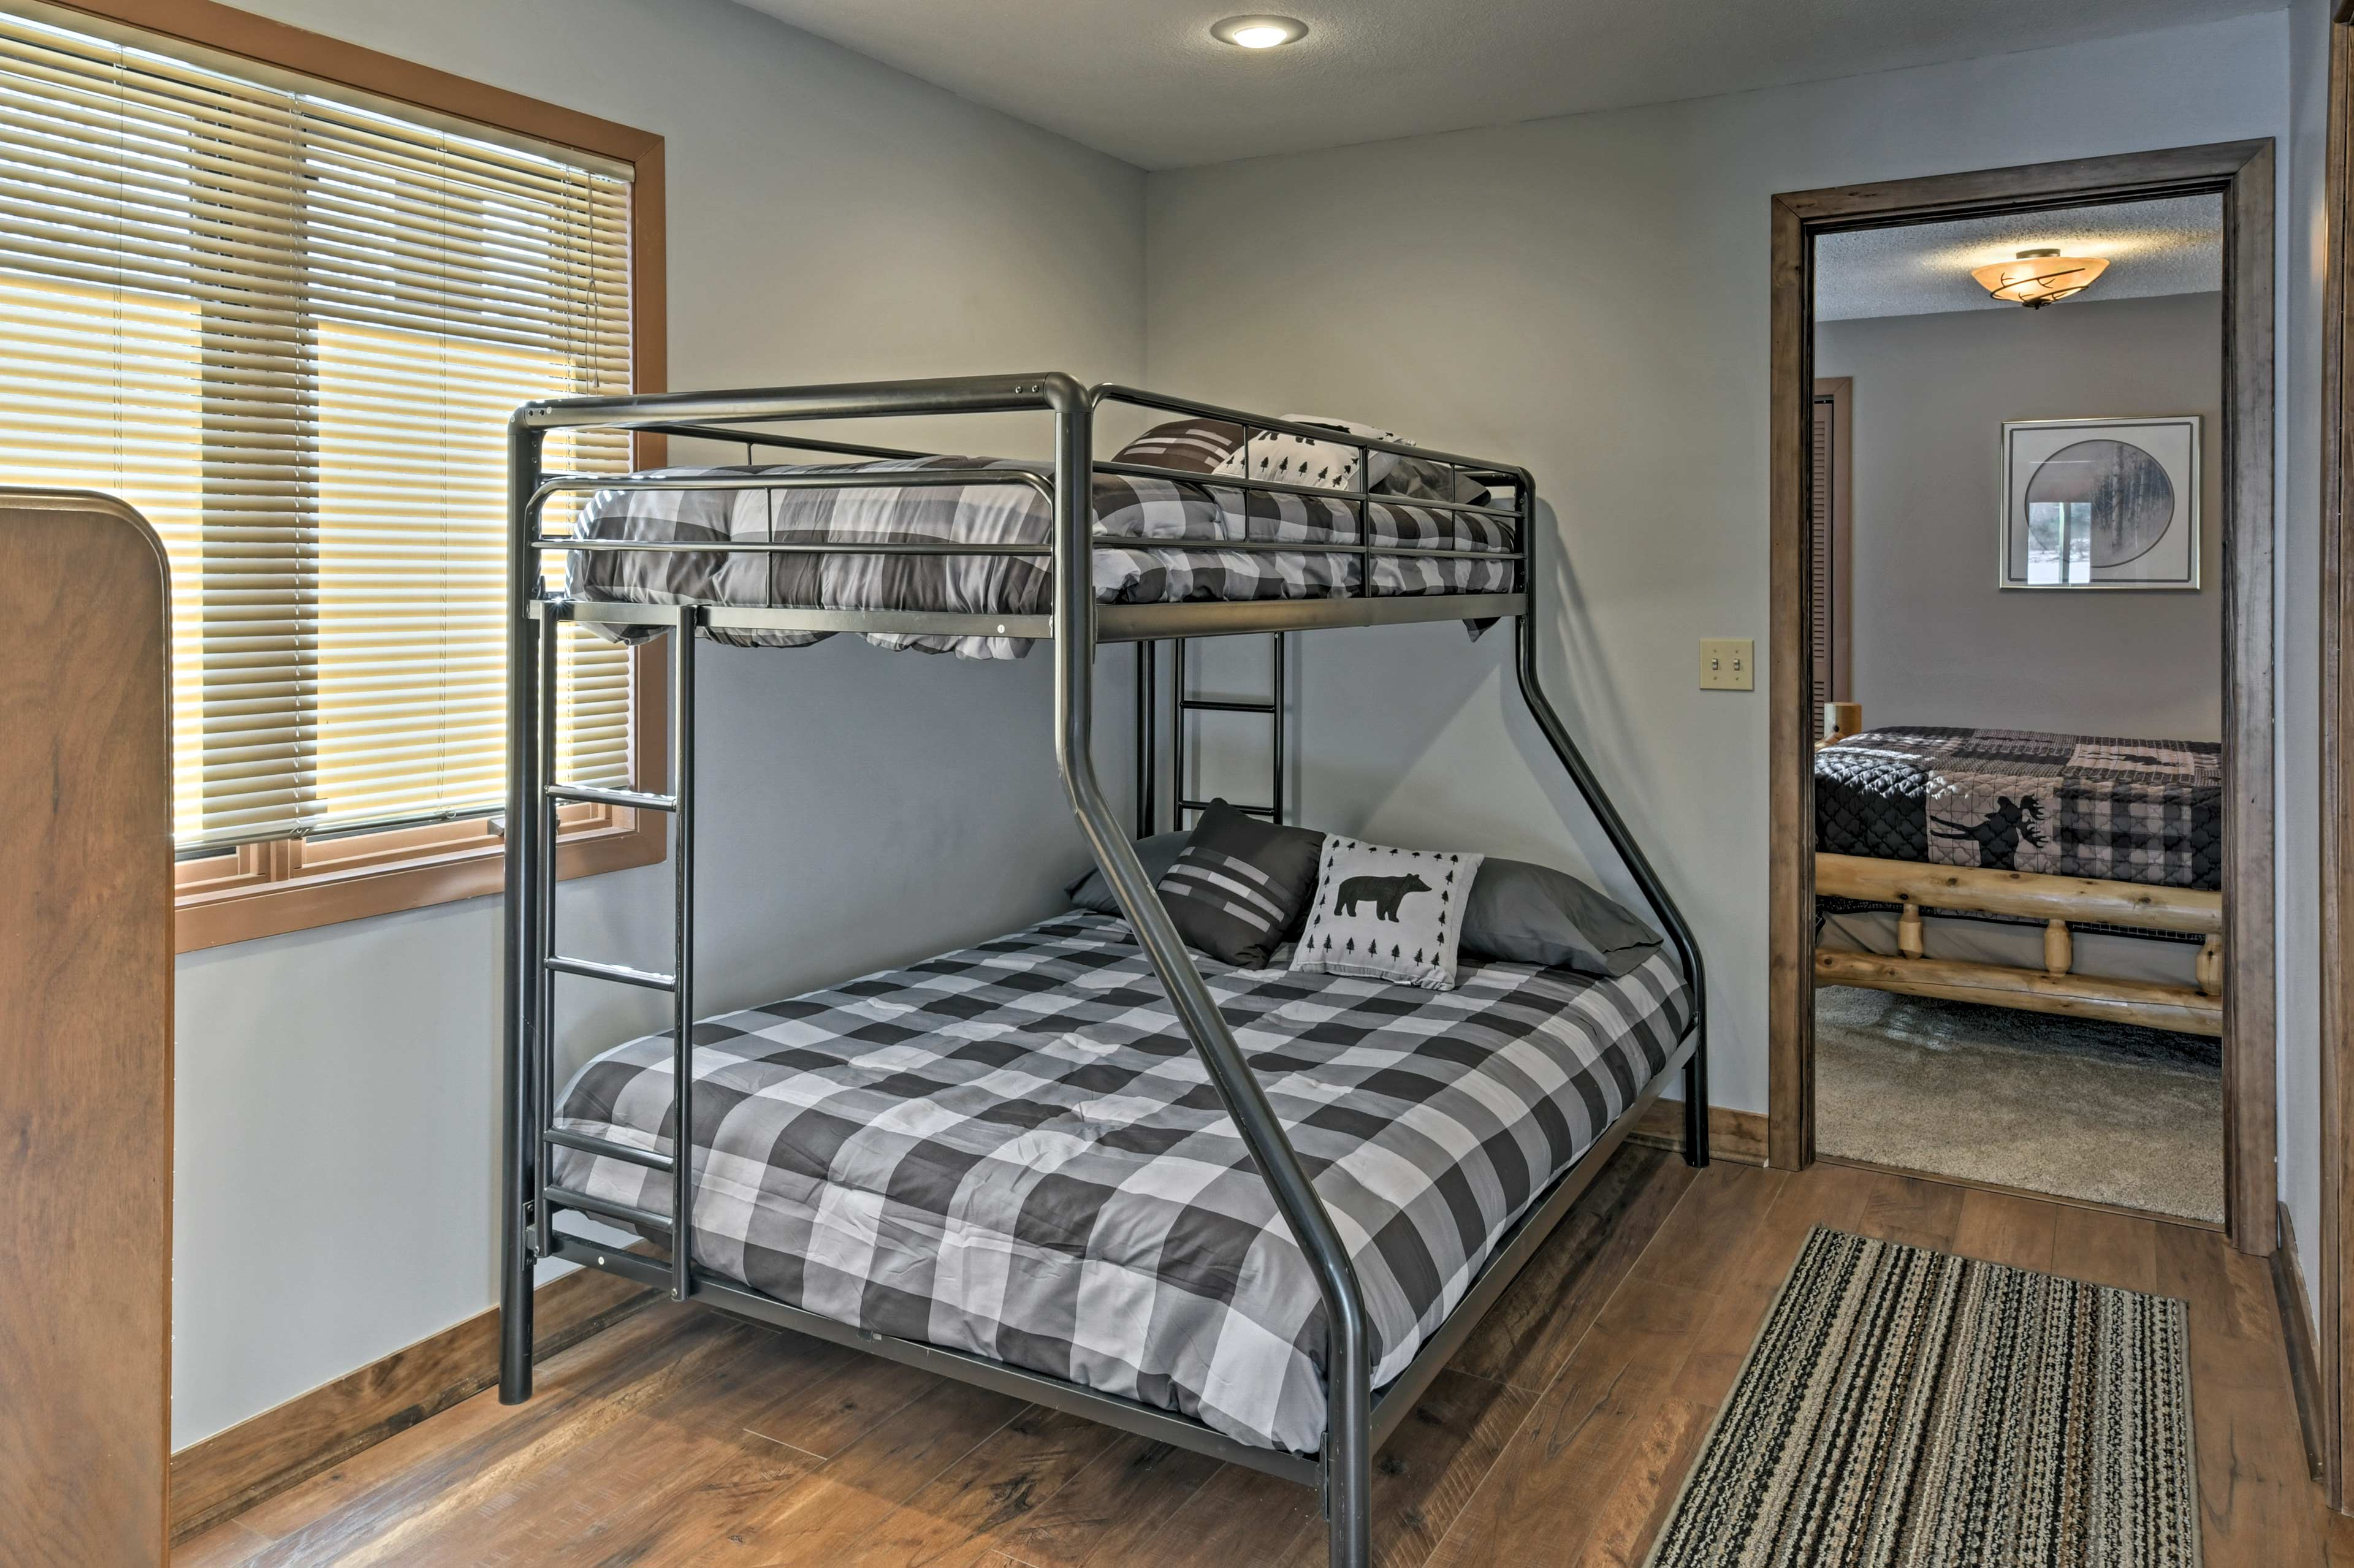 Kids will love sharing this twin-over-full bunk bed.